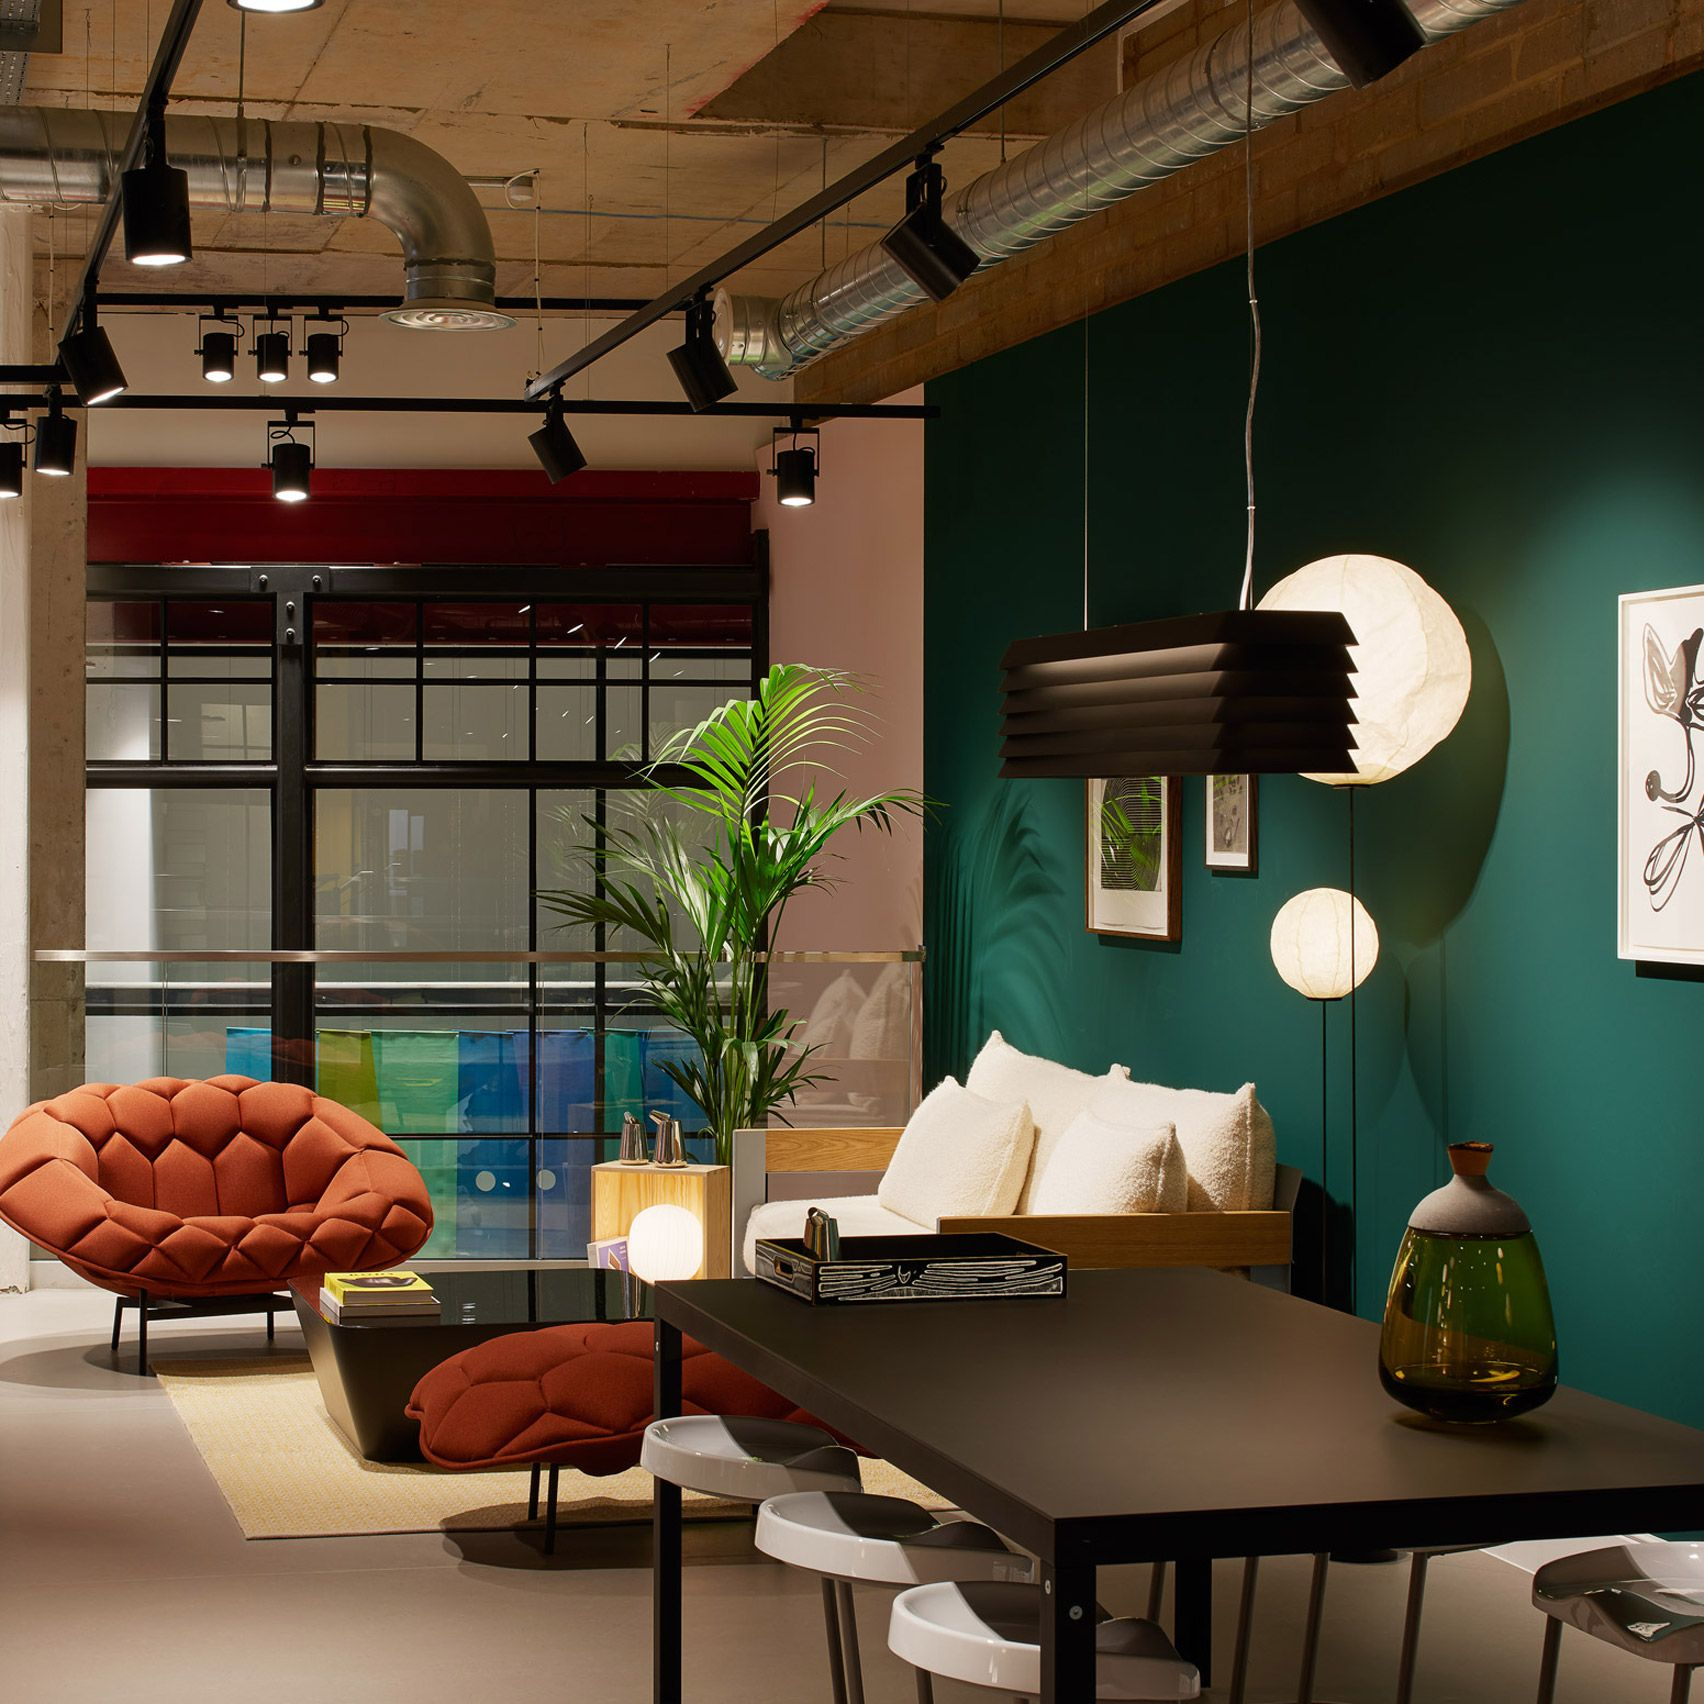 London popup House of Harth is filled with rentable